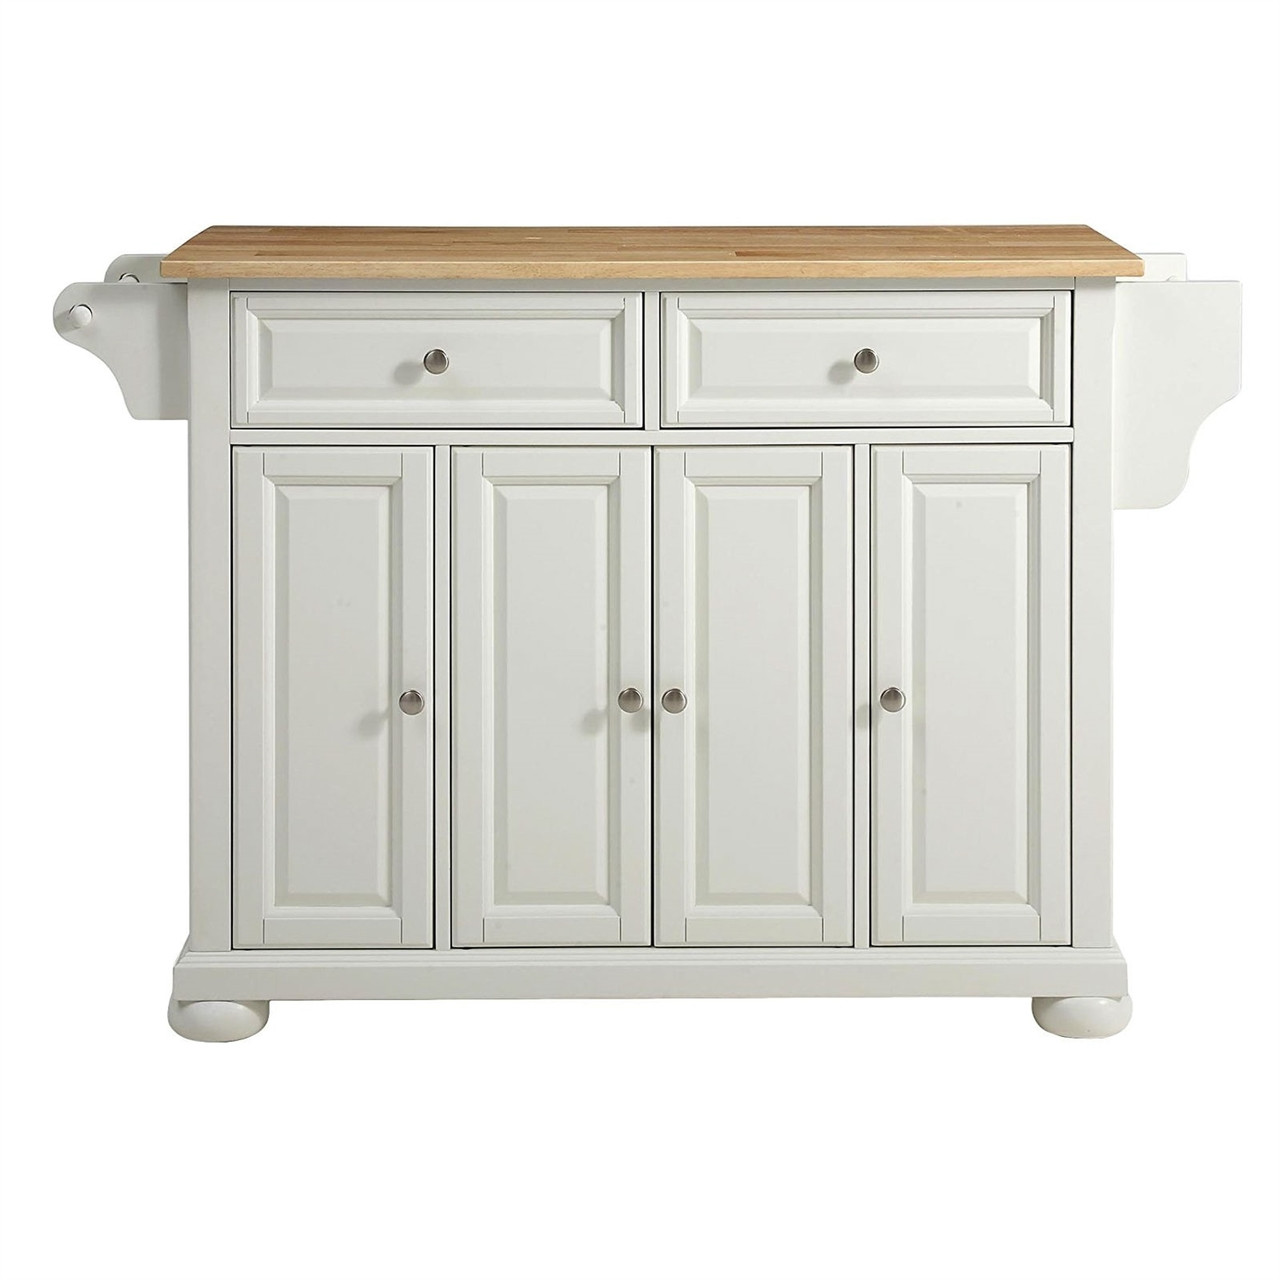 White Kitchen Island Storage Cabinet with Solid Wood Top ...